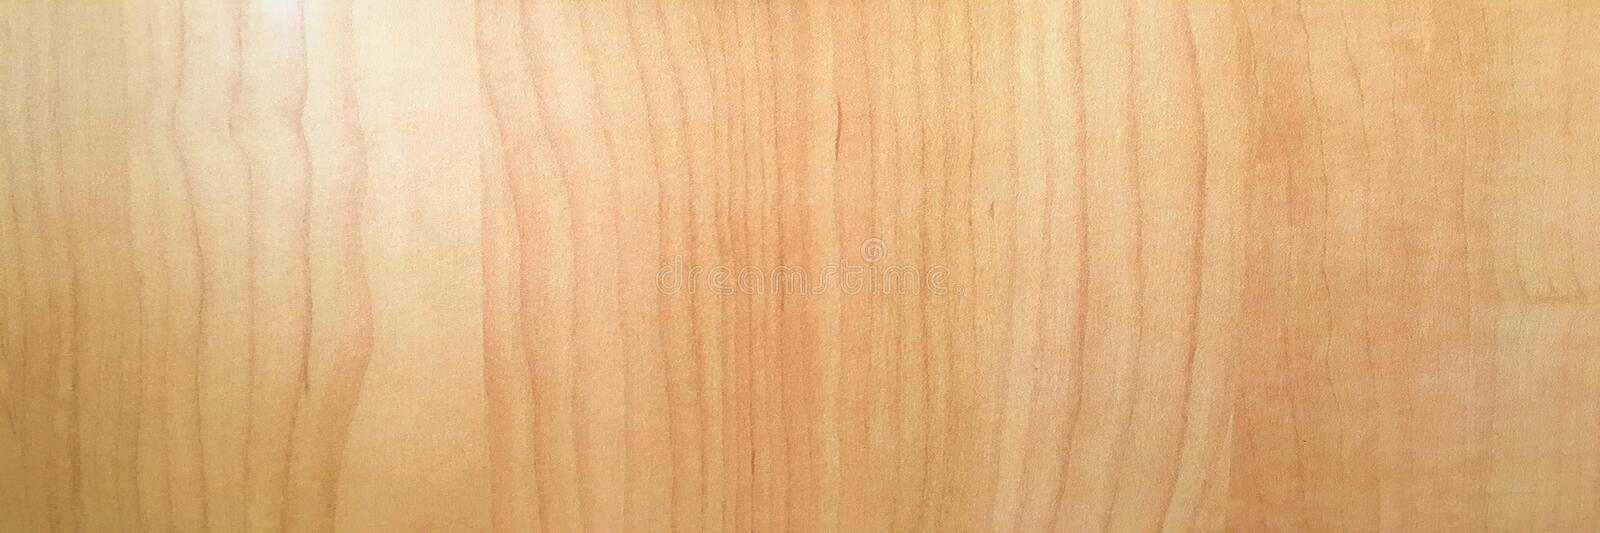 Light soft wood surface as background, wood texture. Grunge washed wood planks table pattern top view. Light soft wood surface as background, wood texture stock photo